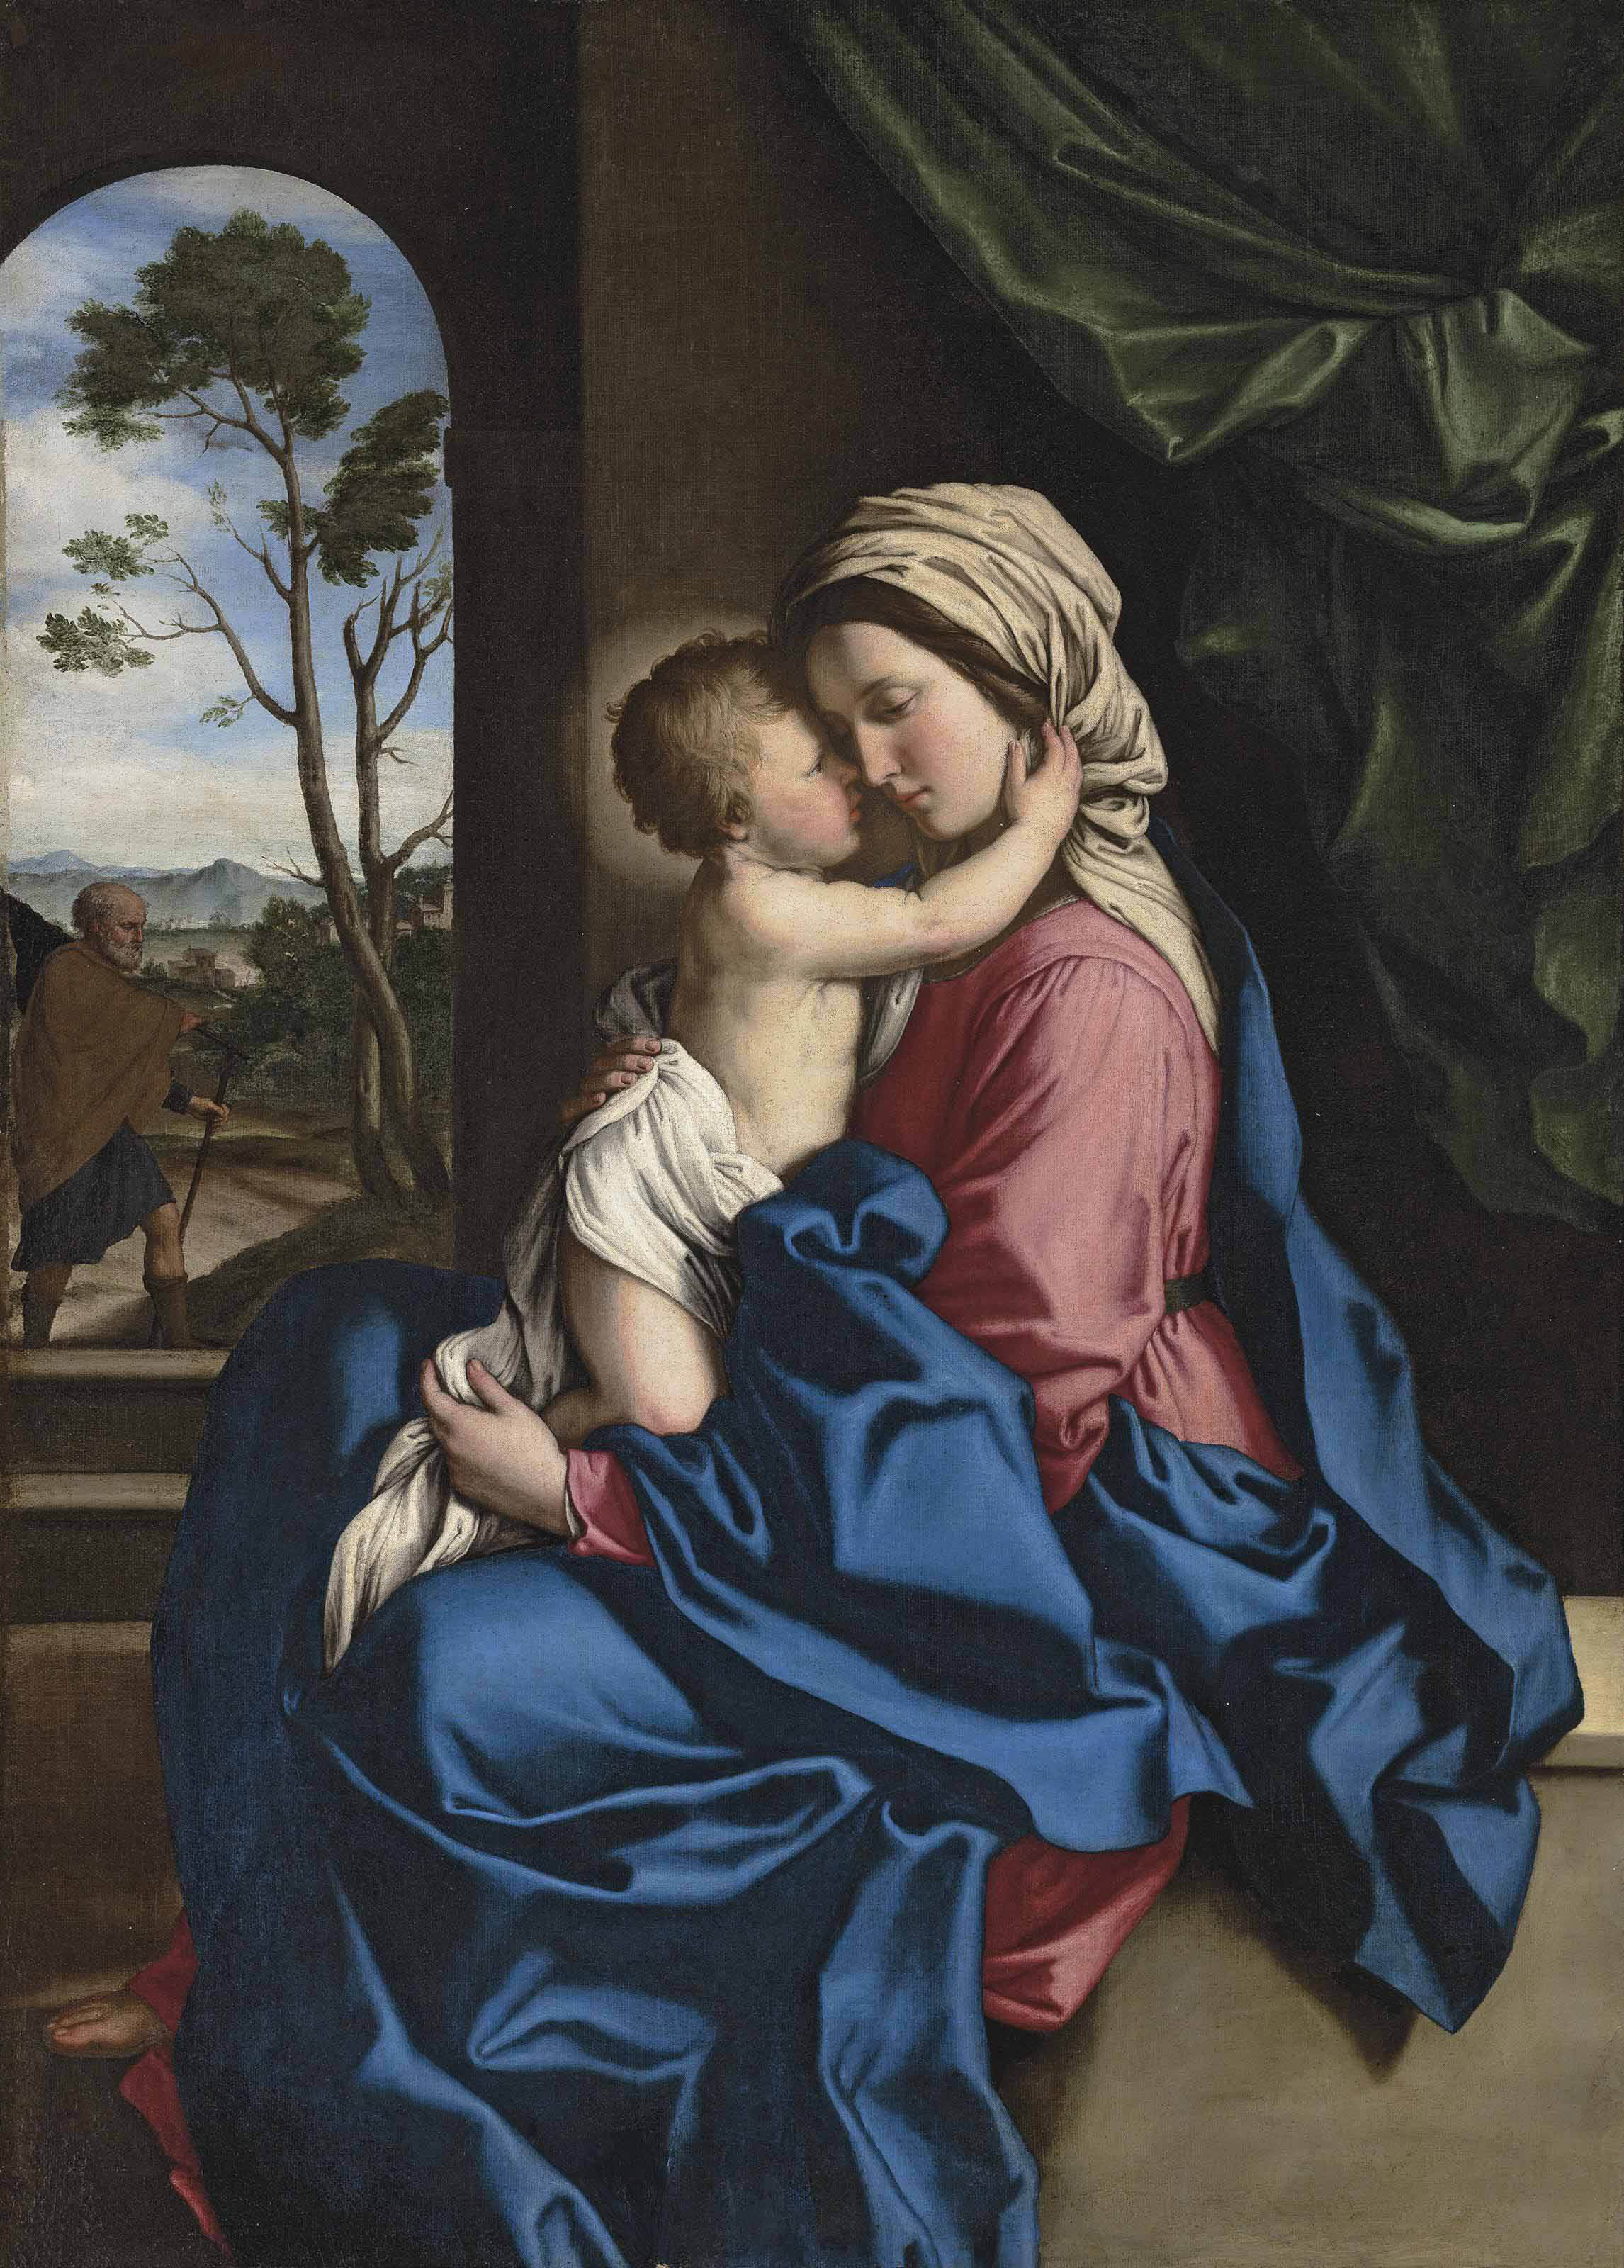 The Madonna and Child embracing in an interior, a landscape with Saint Joseph beyond